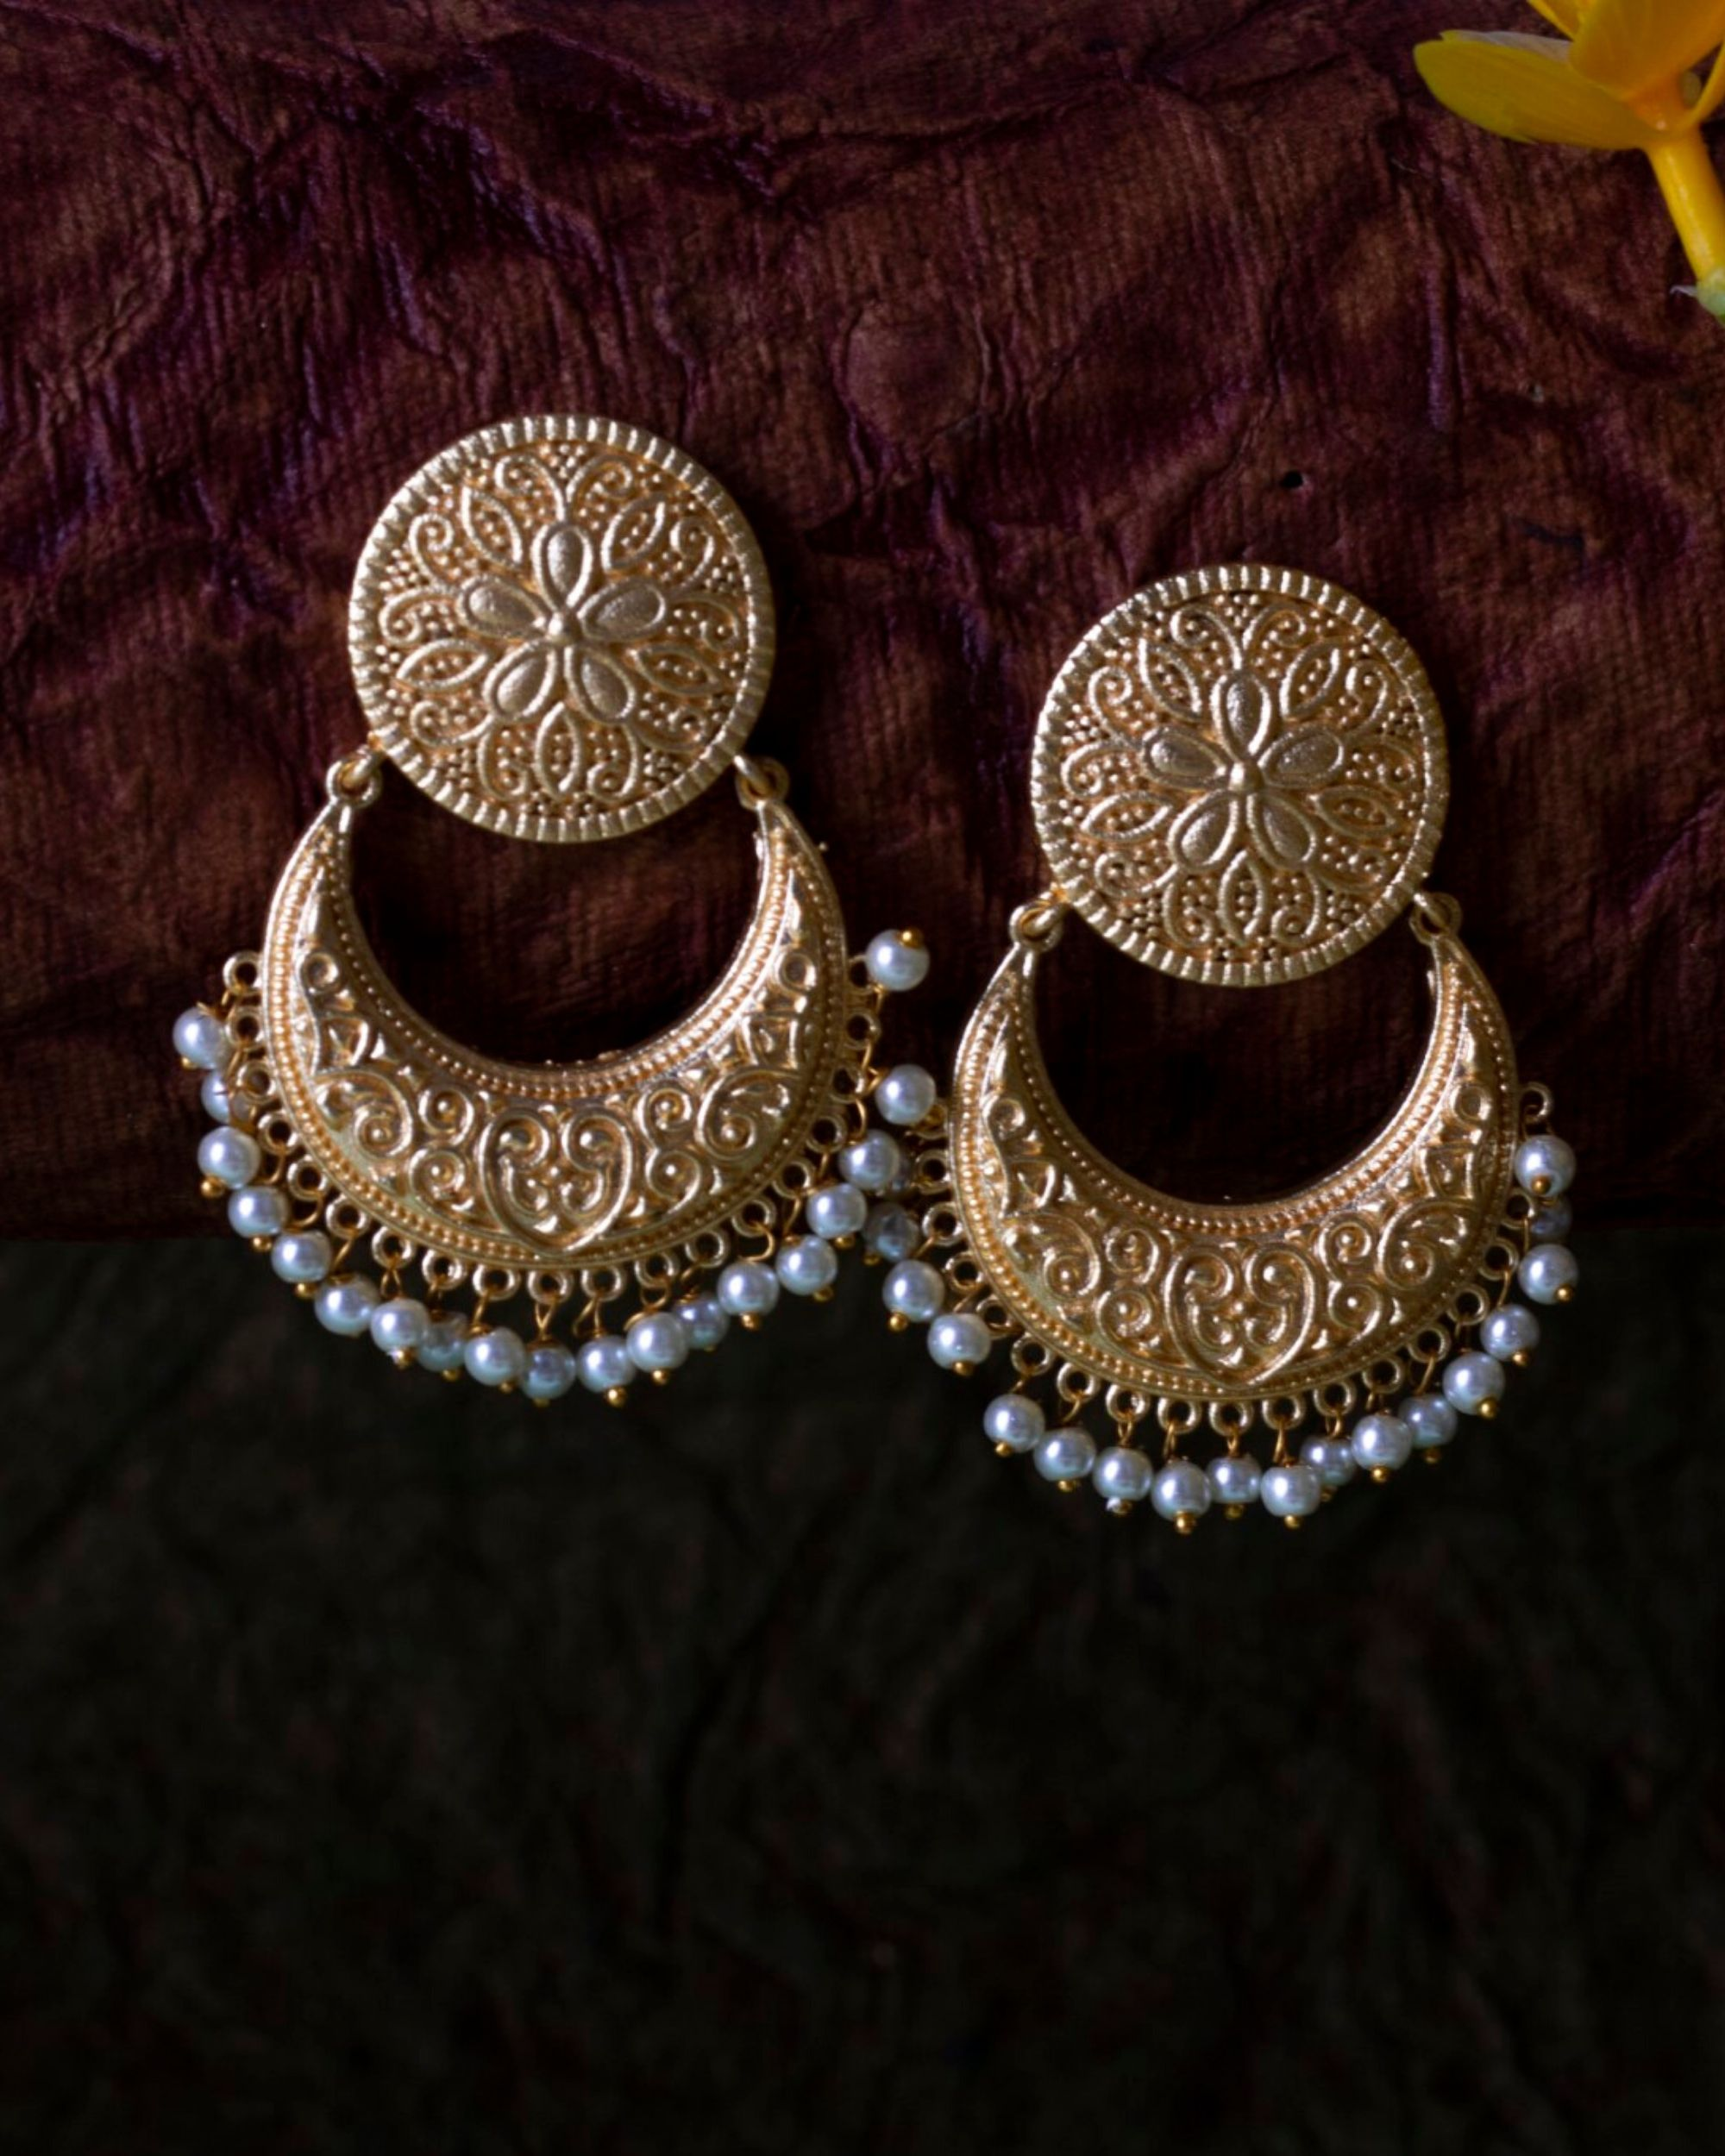 Floral motif chandbali with pearl beads